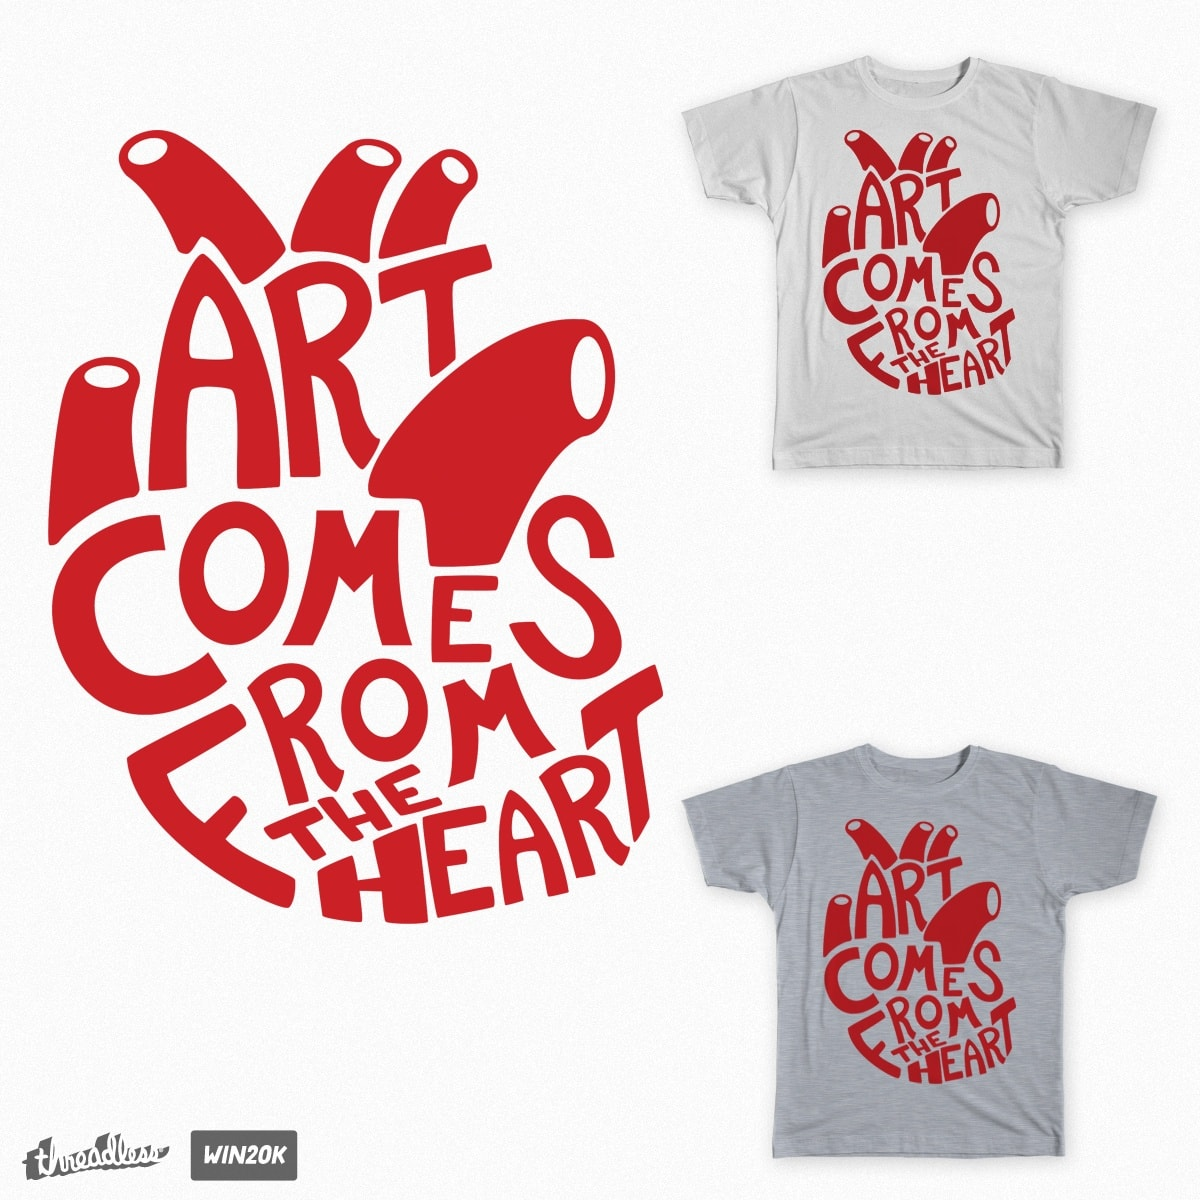 Art Comes From The Heart by Autexousious on Threadless